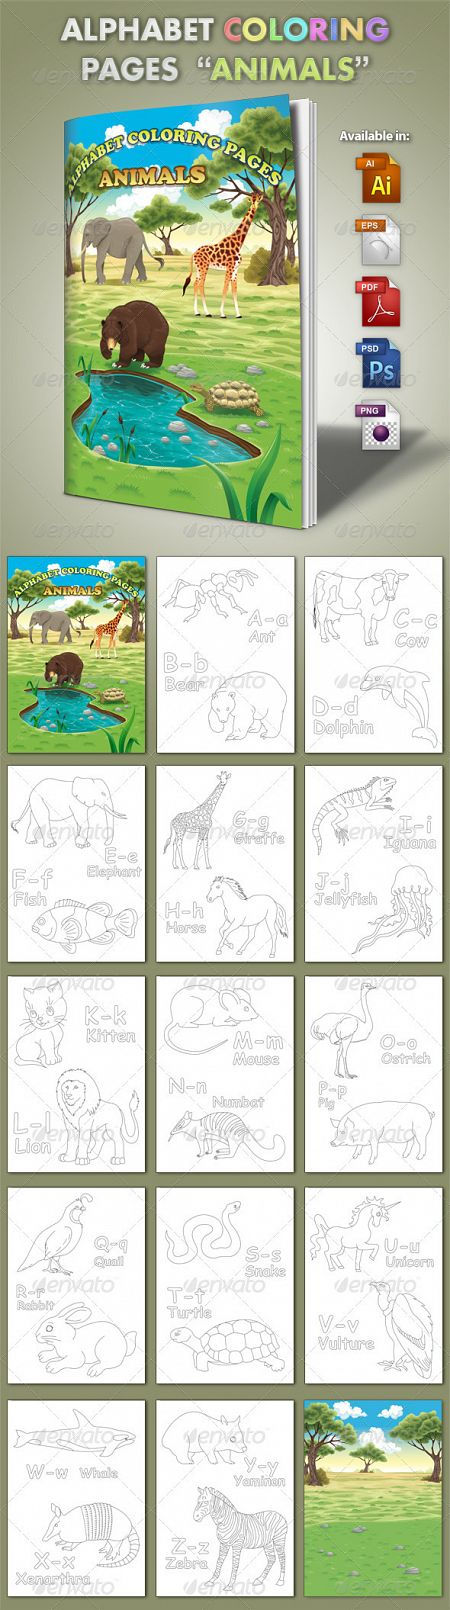 Alphabet Coloring Pages - Animals